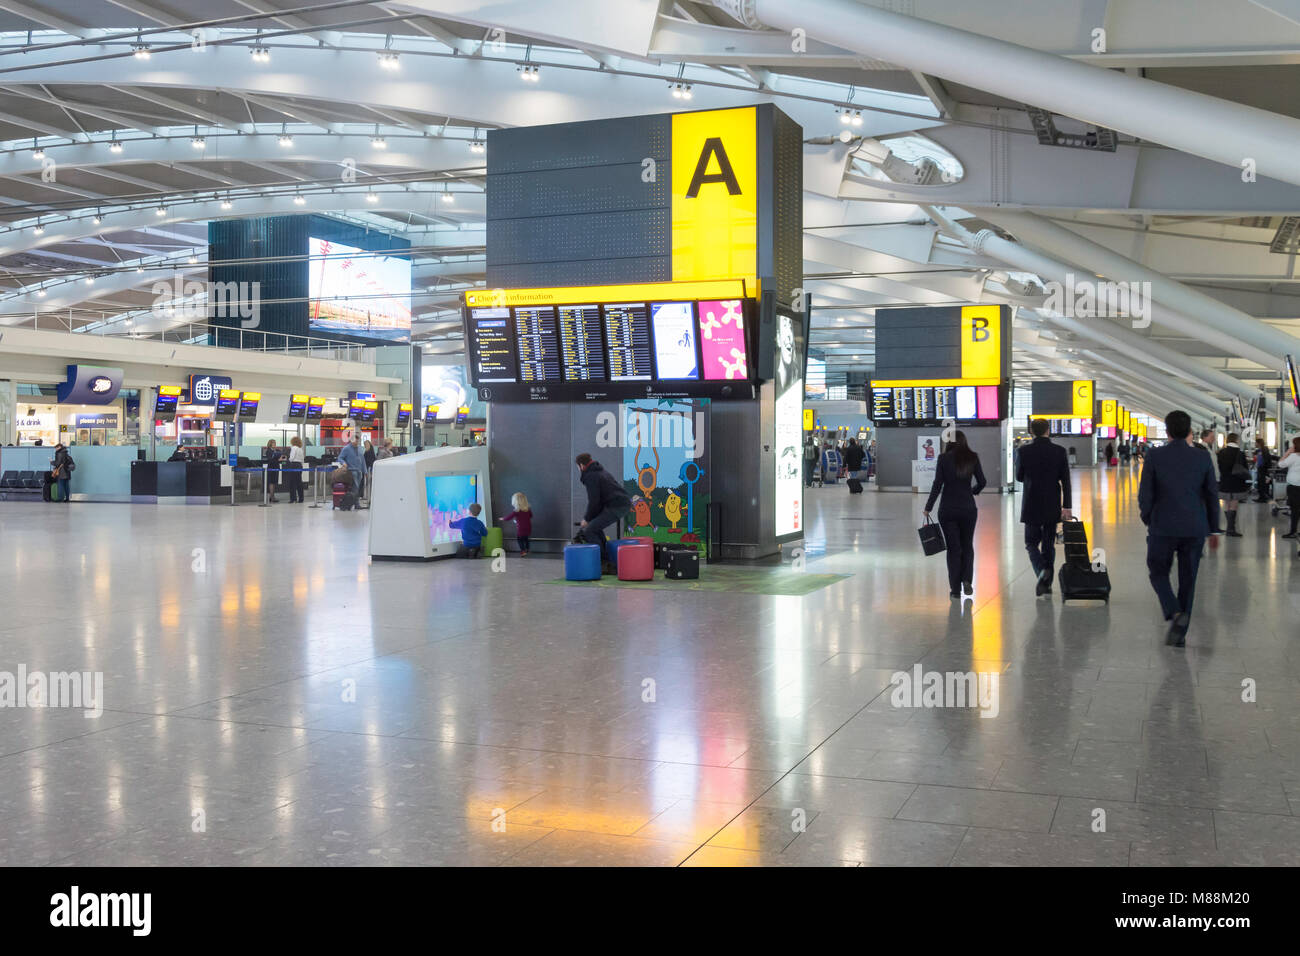 Departure level interior, Terminal 5, Heathrow Airport. London Borough of Hounslow, Greater London, England, United - Stock Image